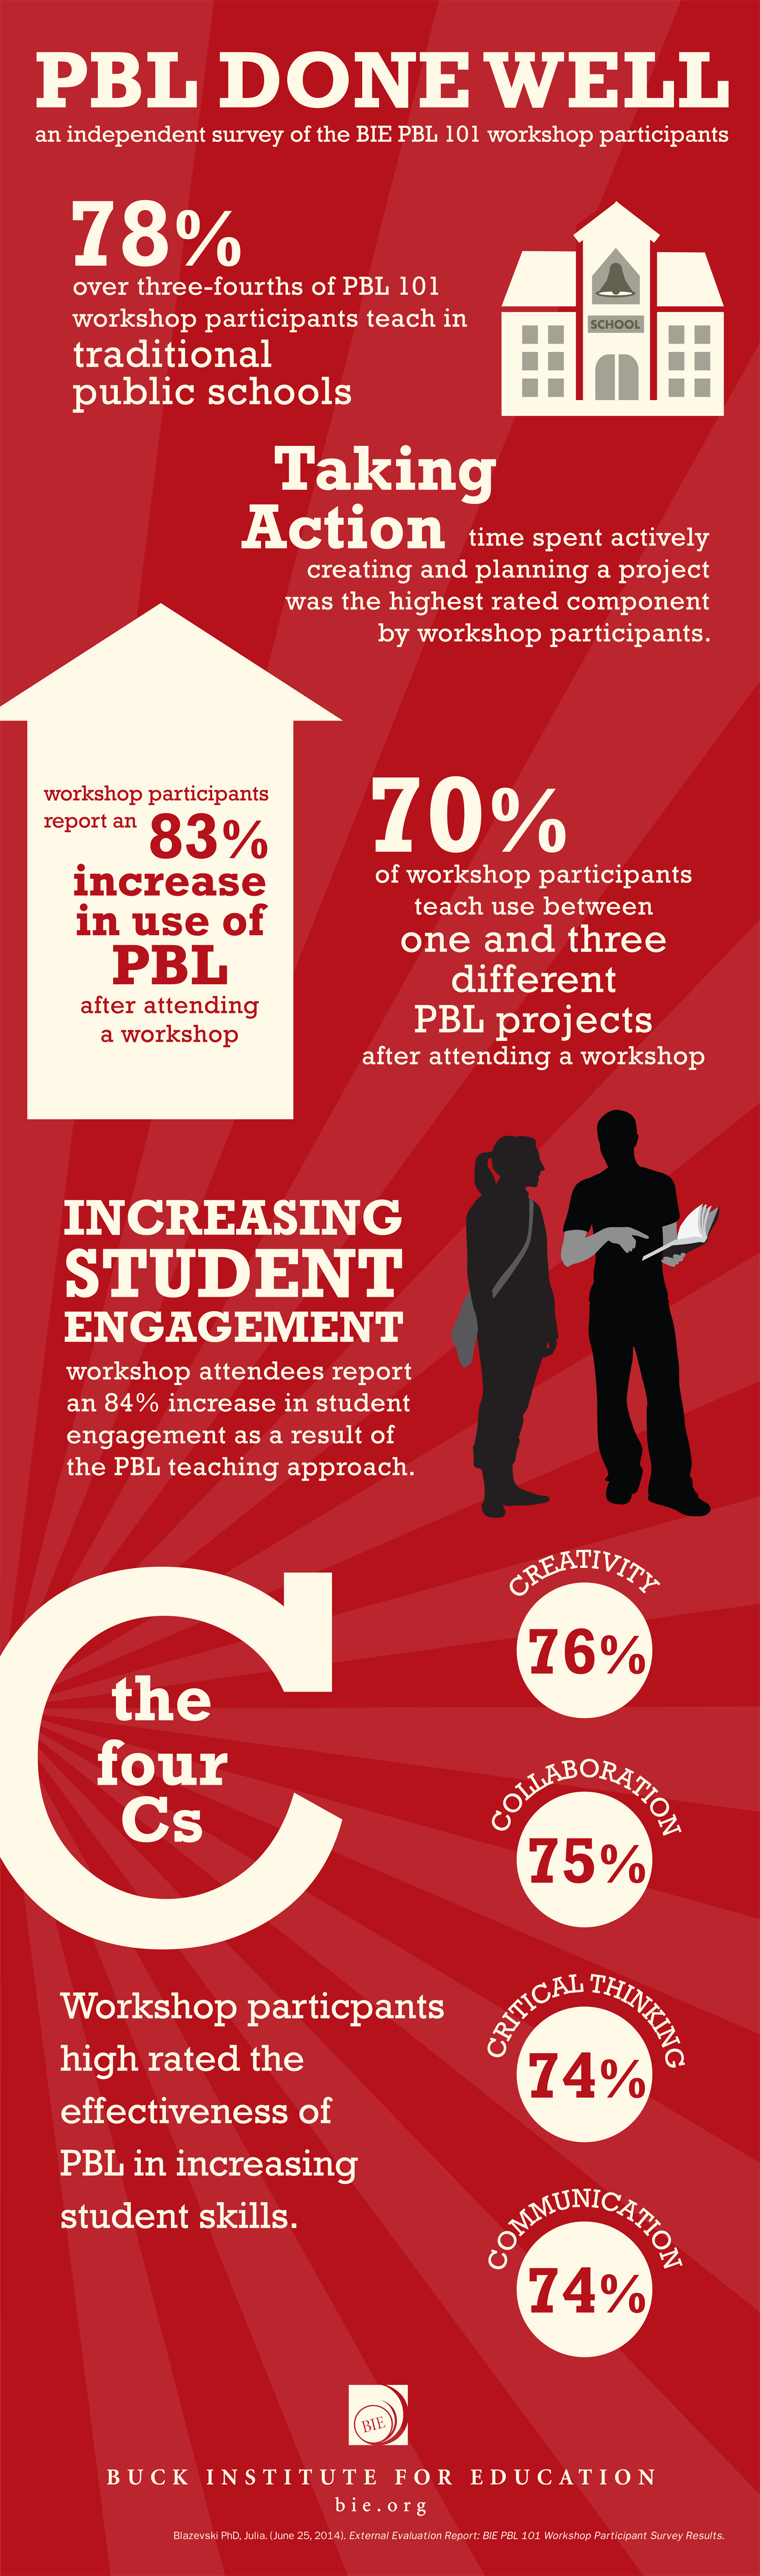 Buck Institute for Education, Project Based Learning Infographic